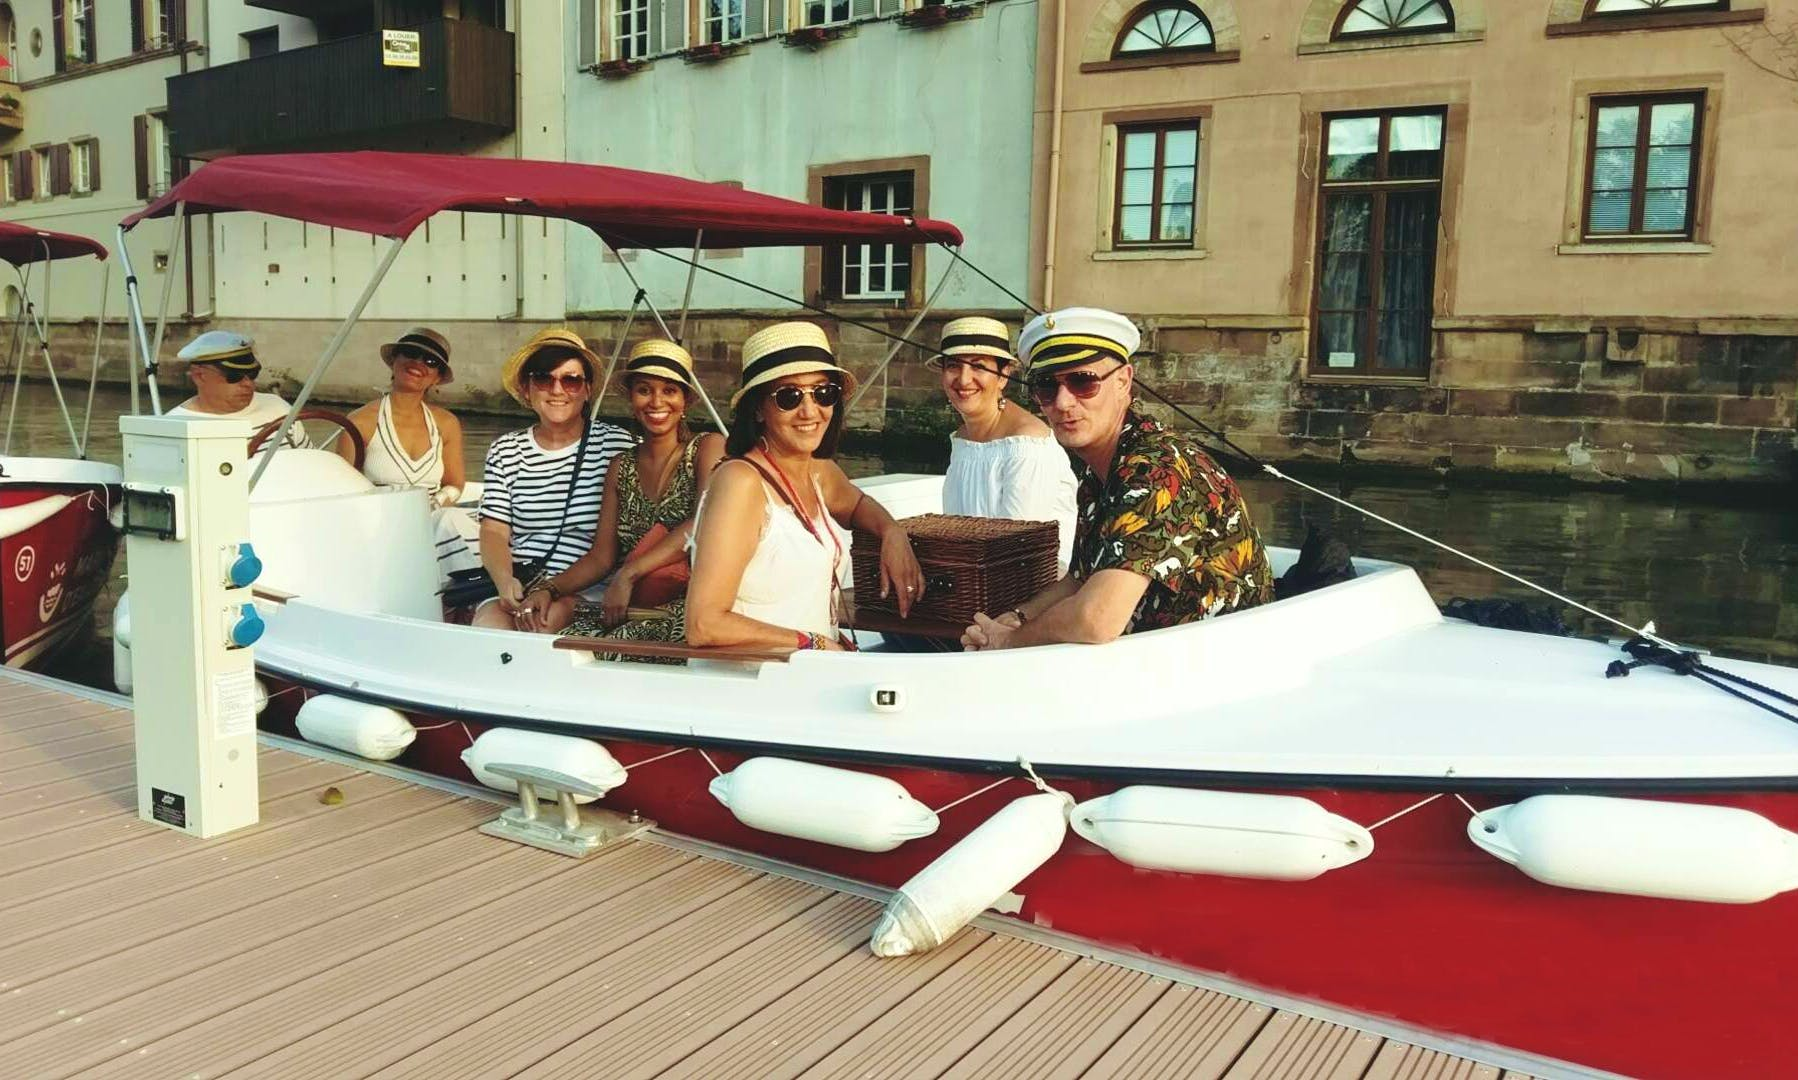 A Gorgeous Electric Boat Ready To Rent Without License In Paris!